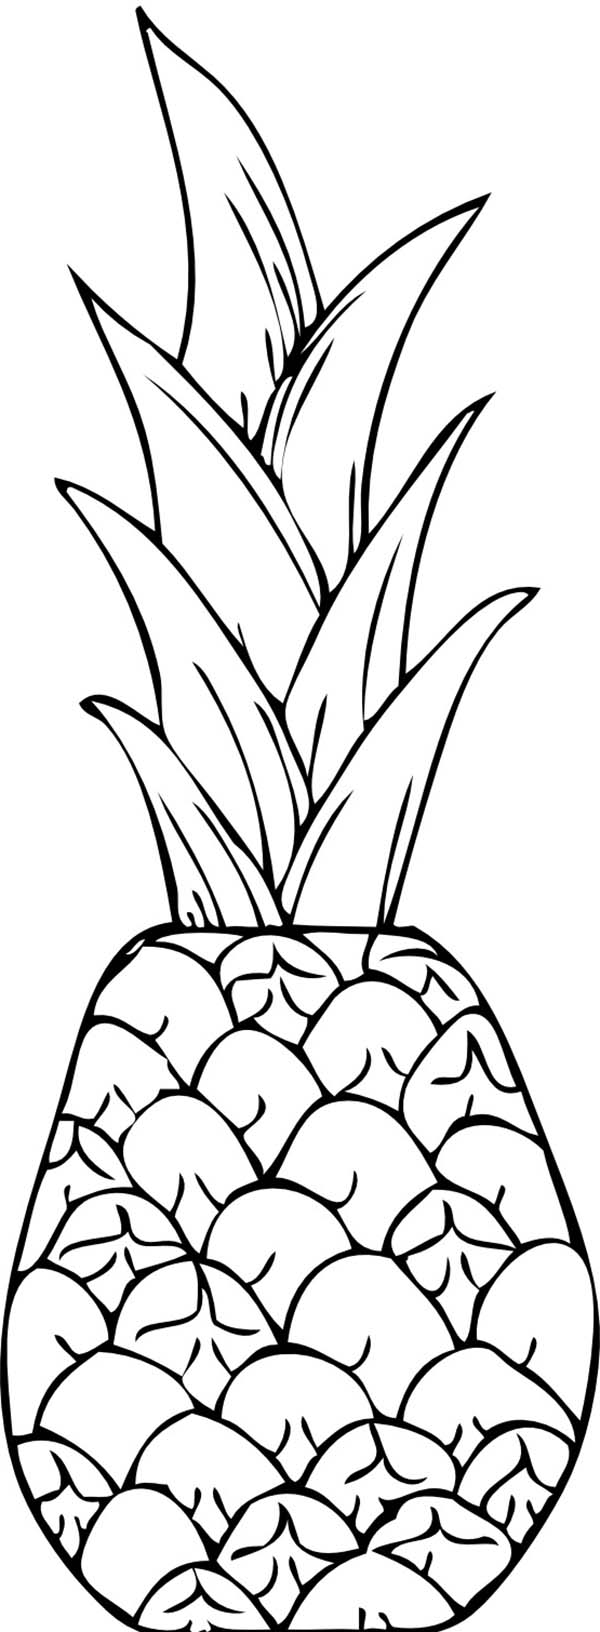 Pineapple Drawing At GetDrawings